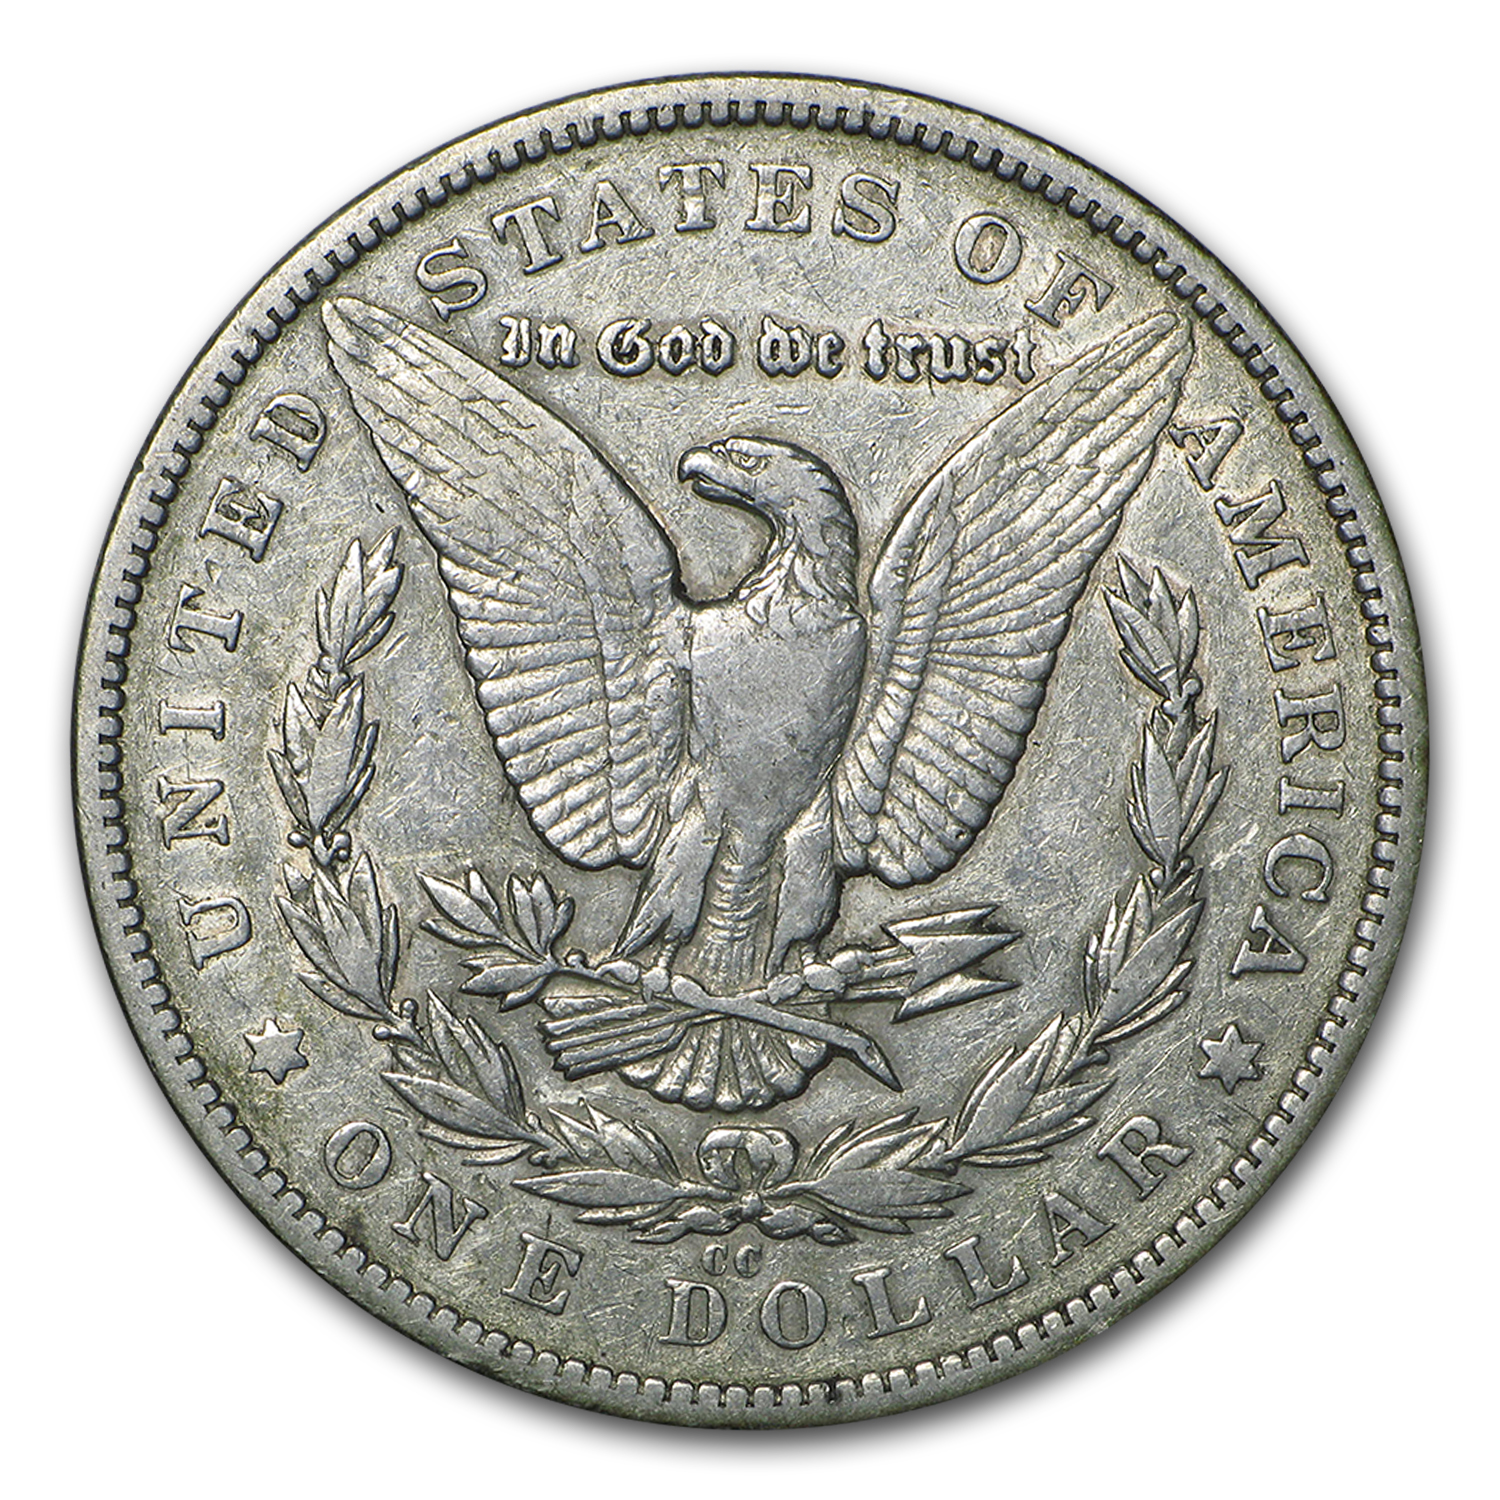 1879-CC Morgan Dollar - (Clear CC) Very Fine